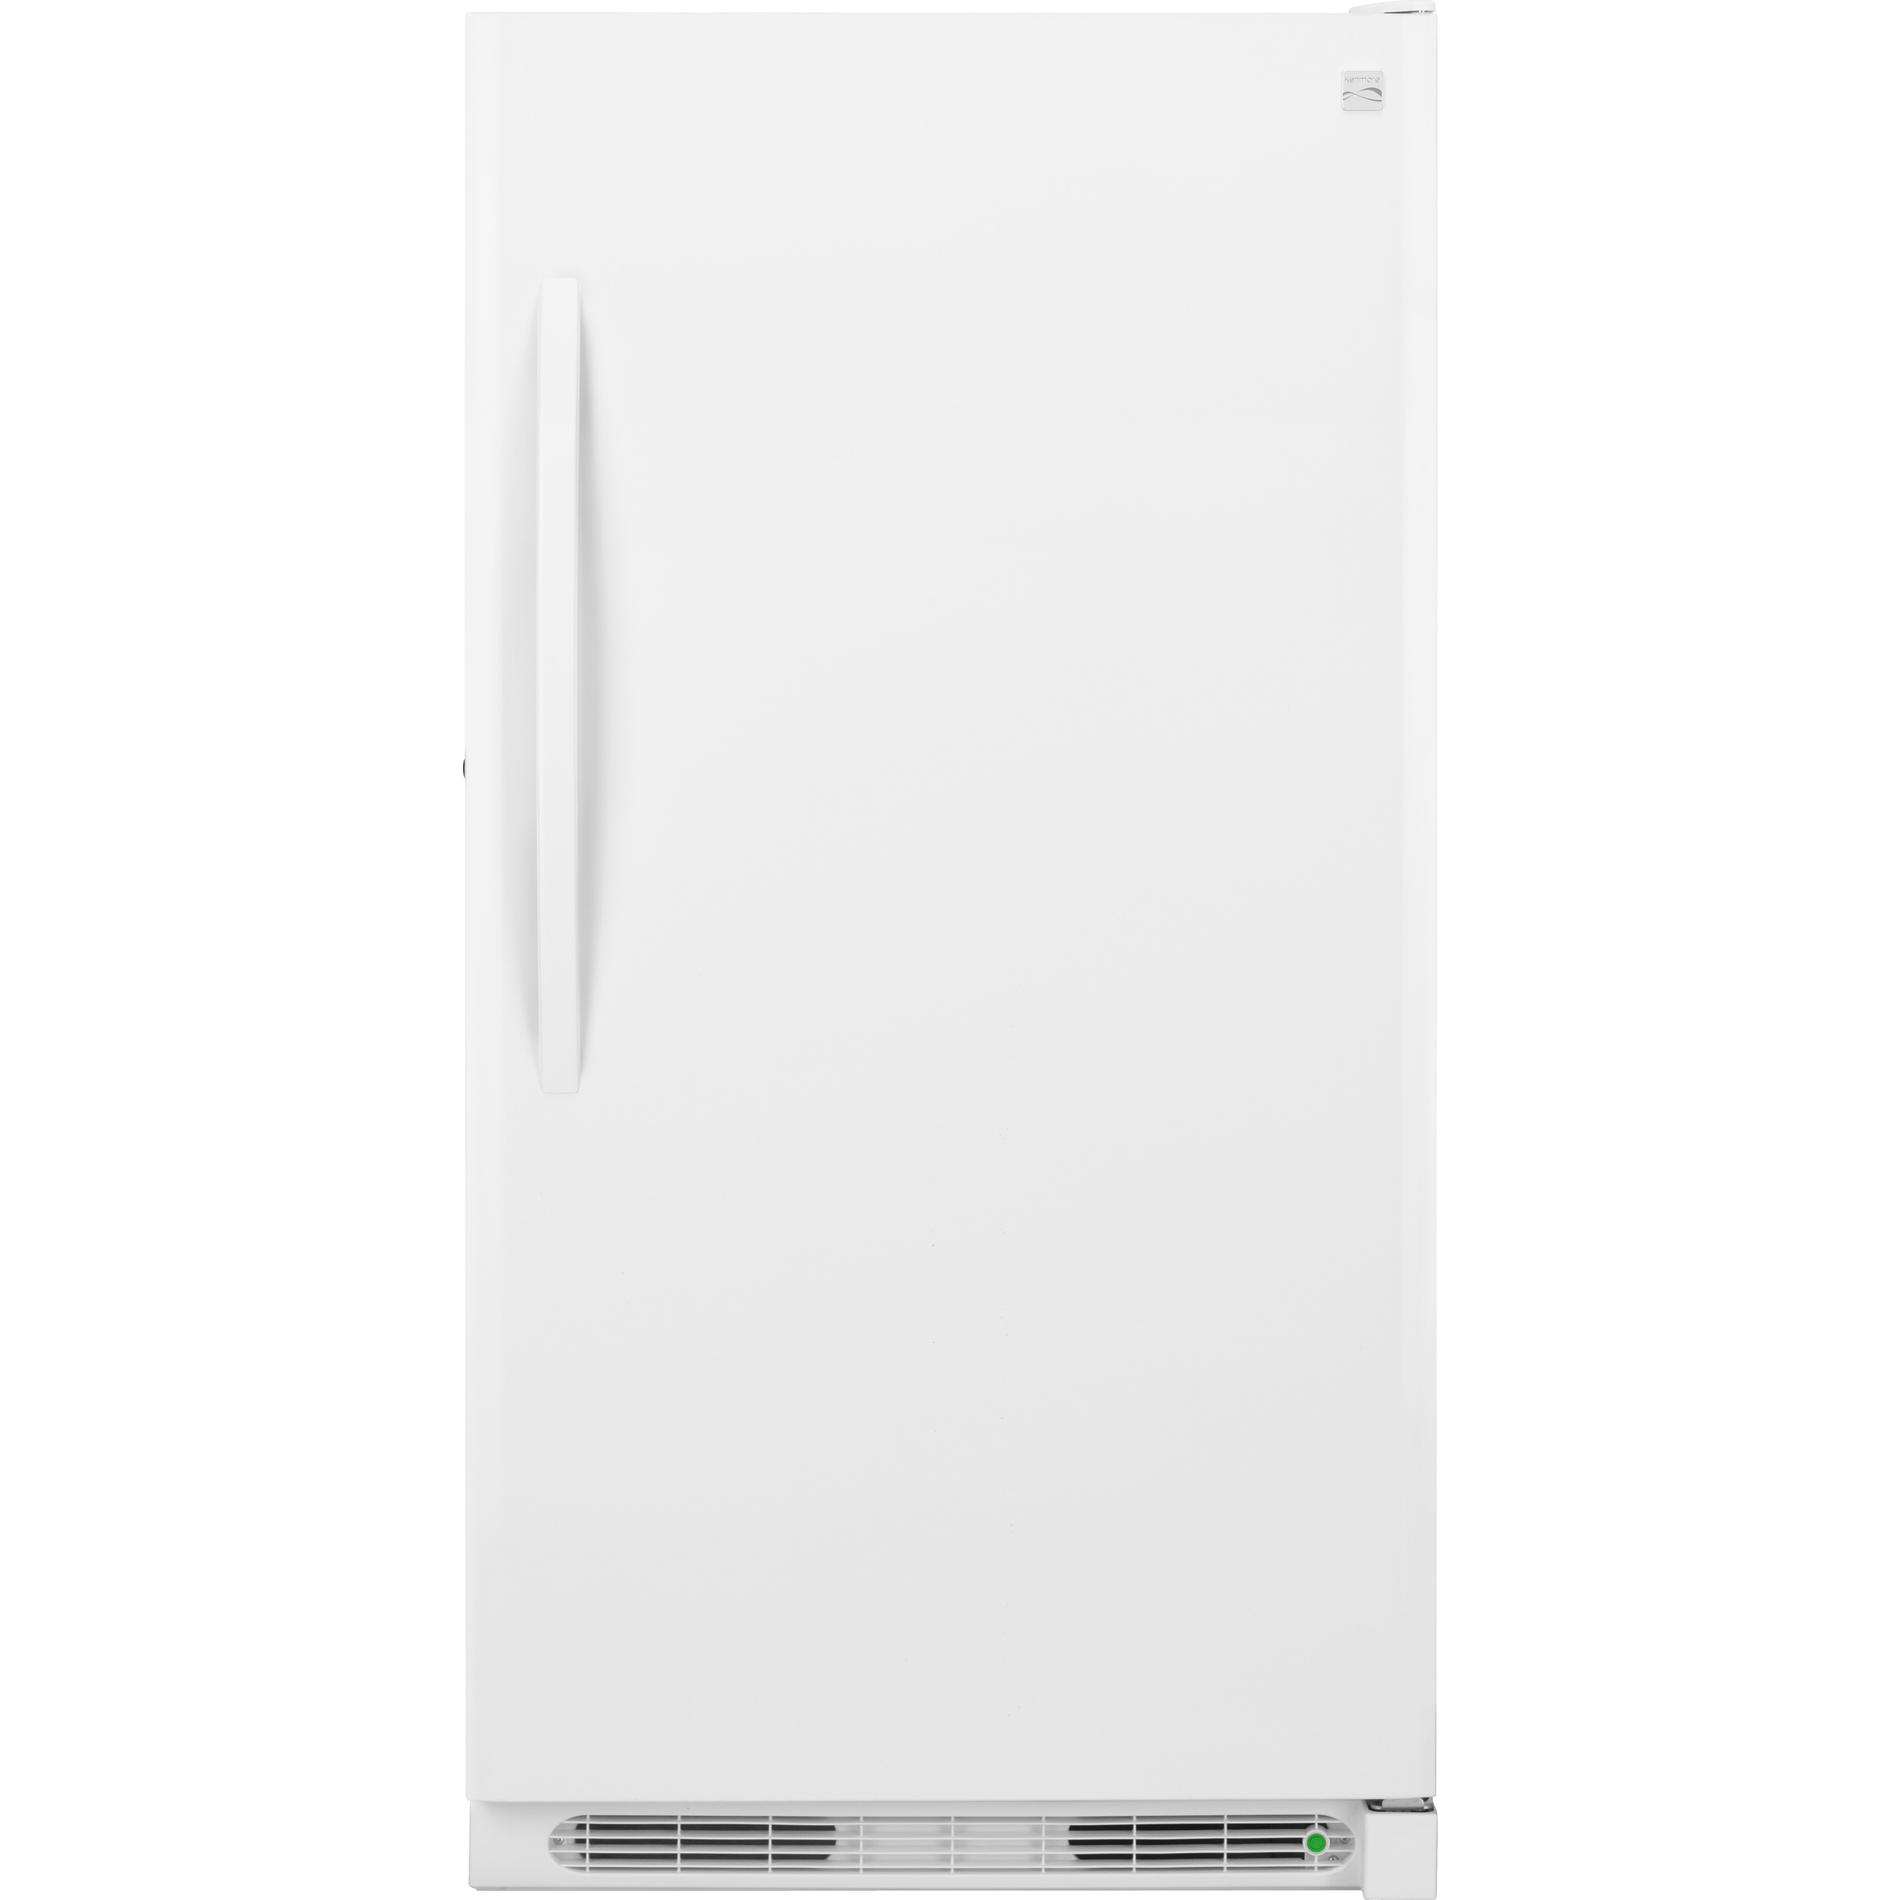 22442-13-8-cu-ft-Upright-Freezer-White